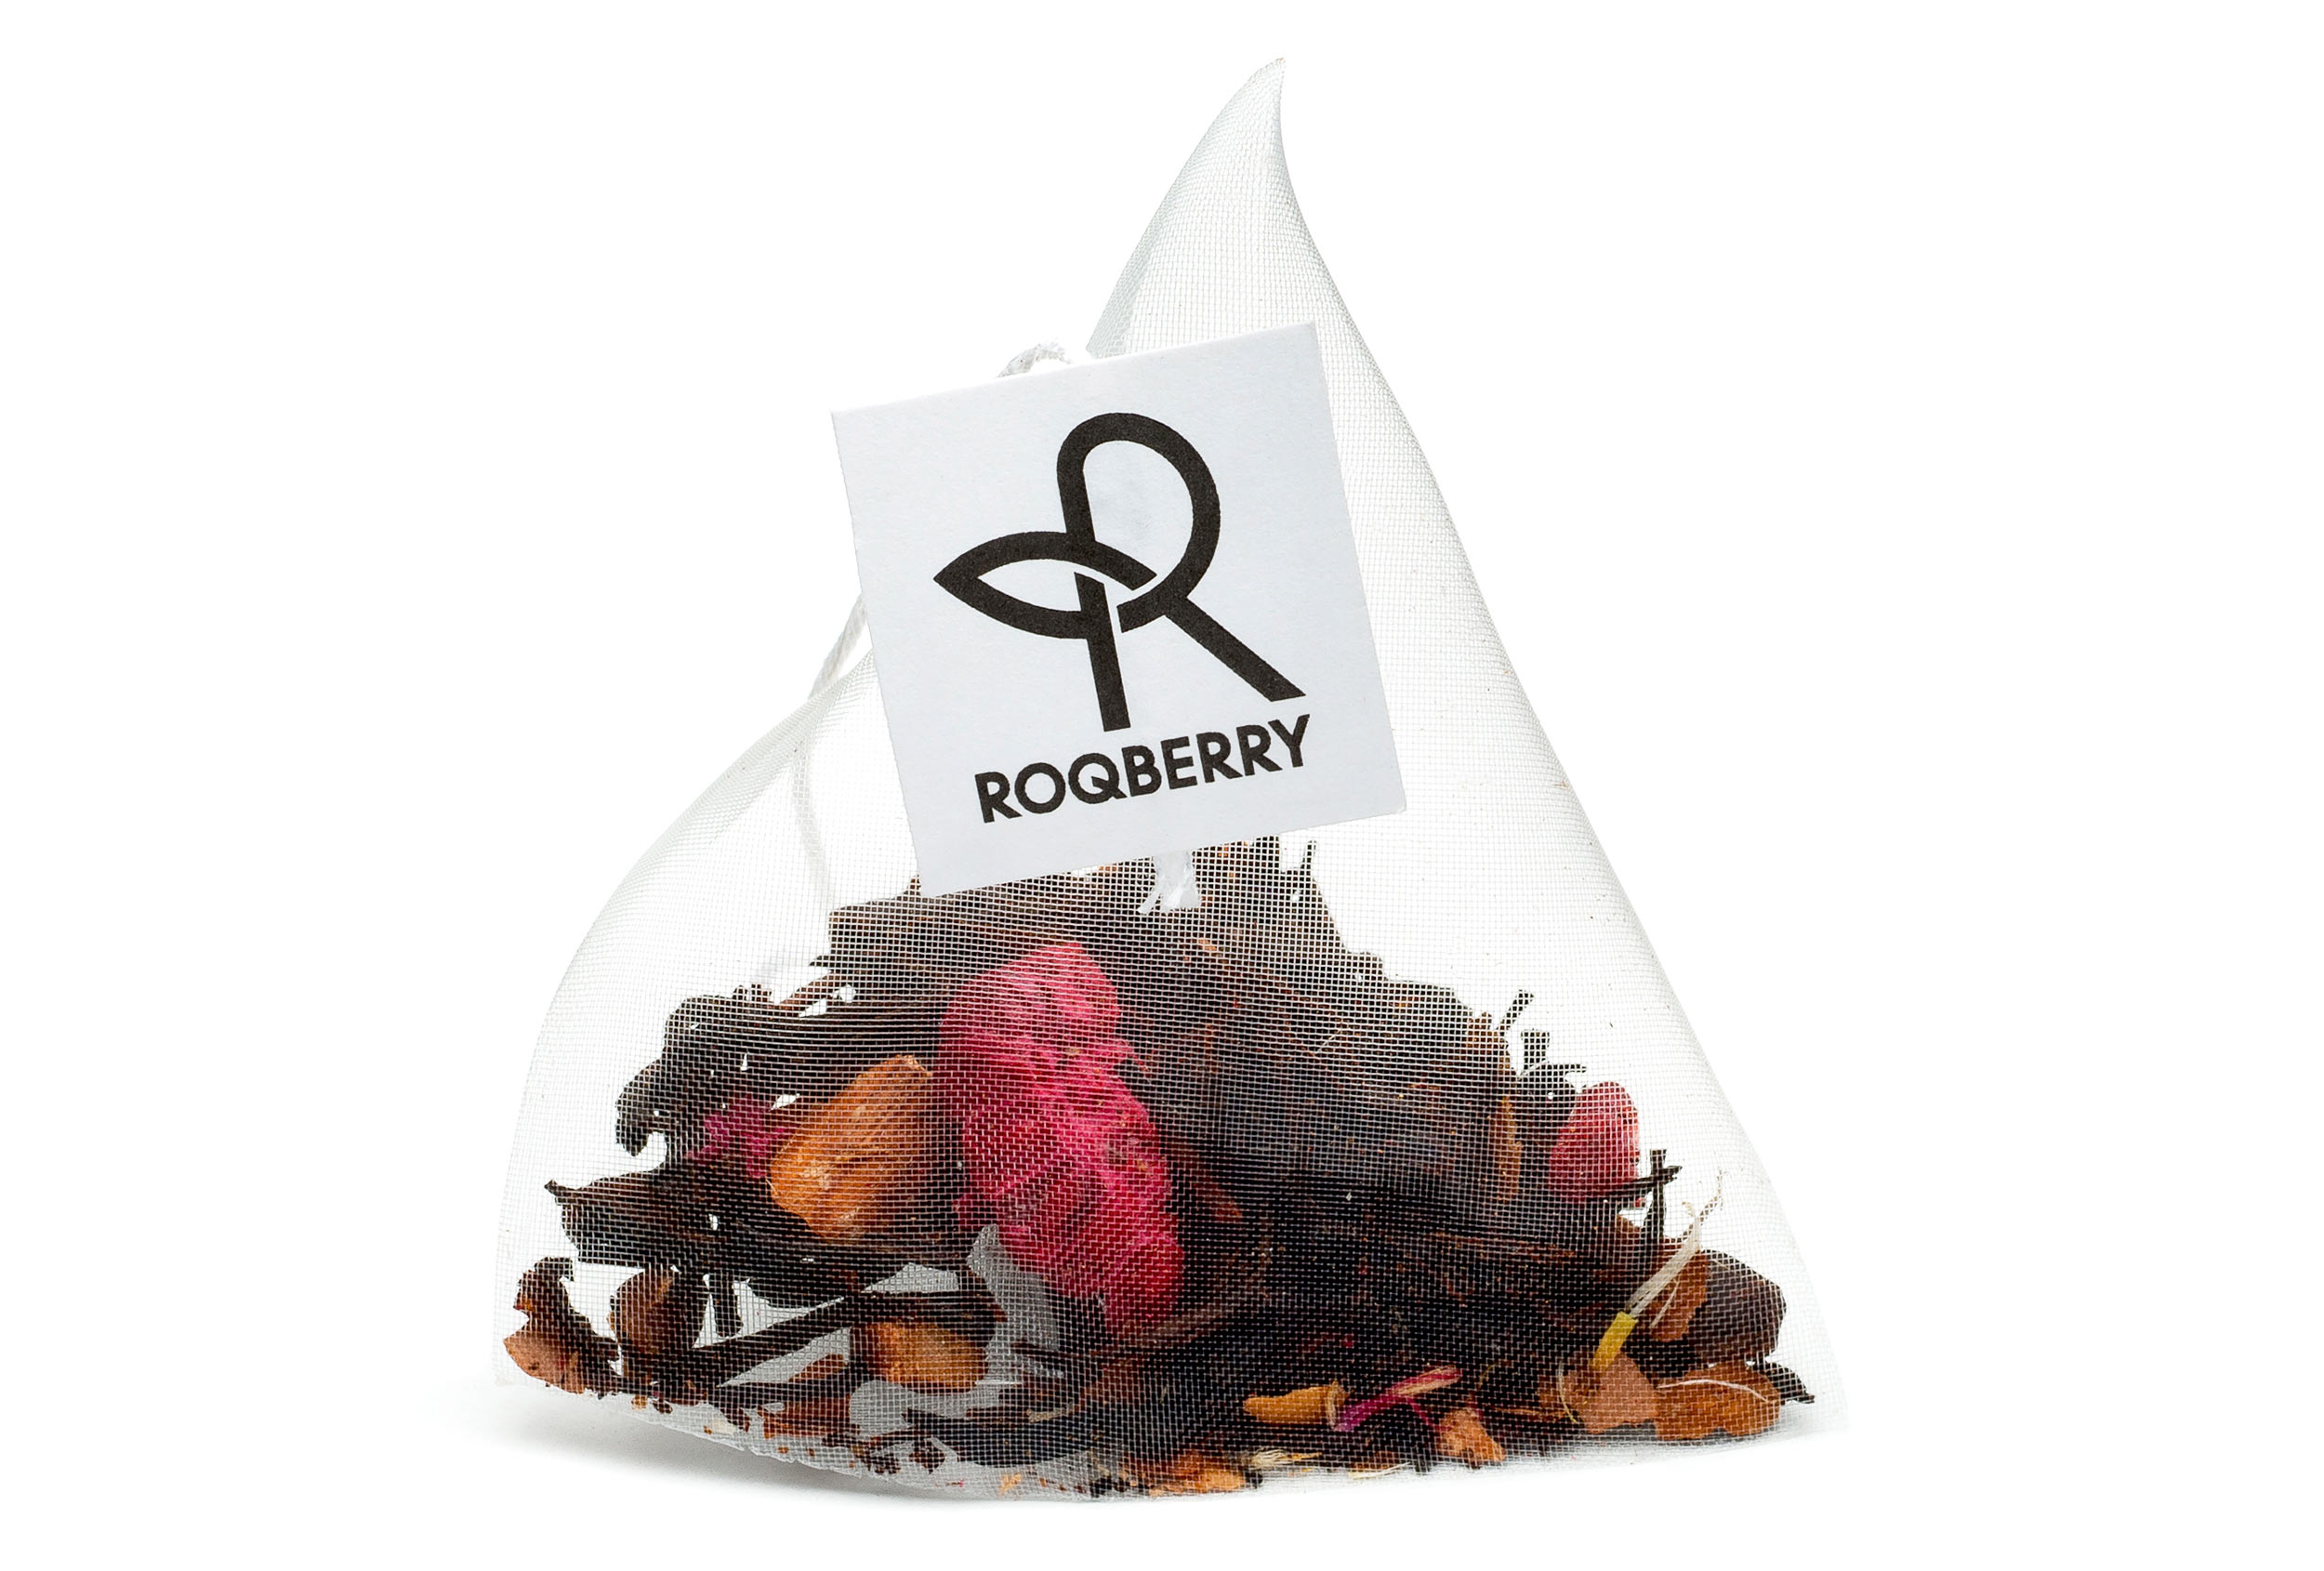 Roqberry pyramid, plastic free bag.